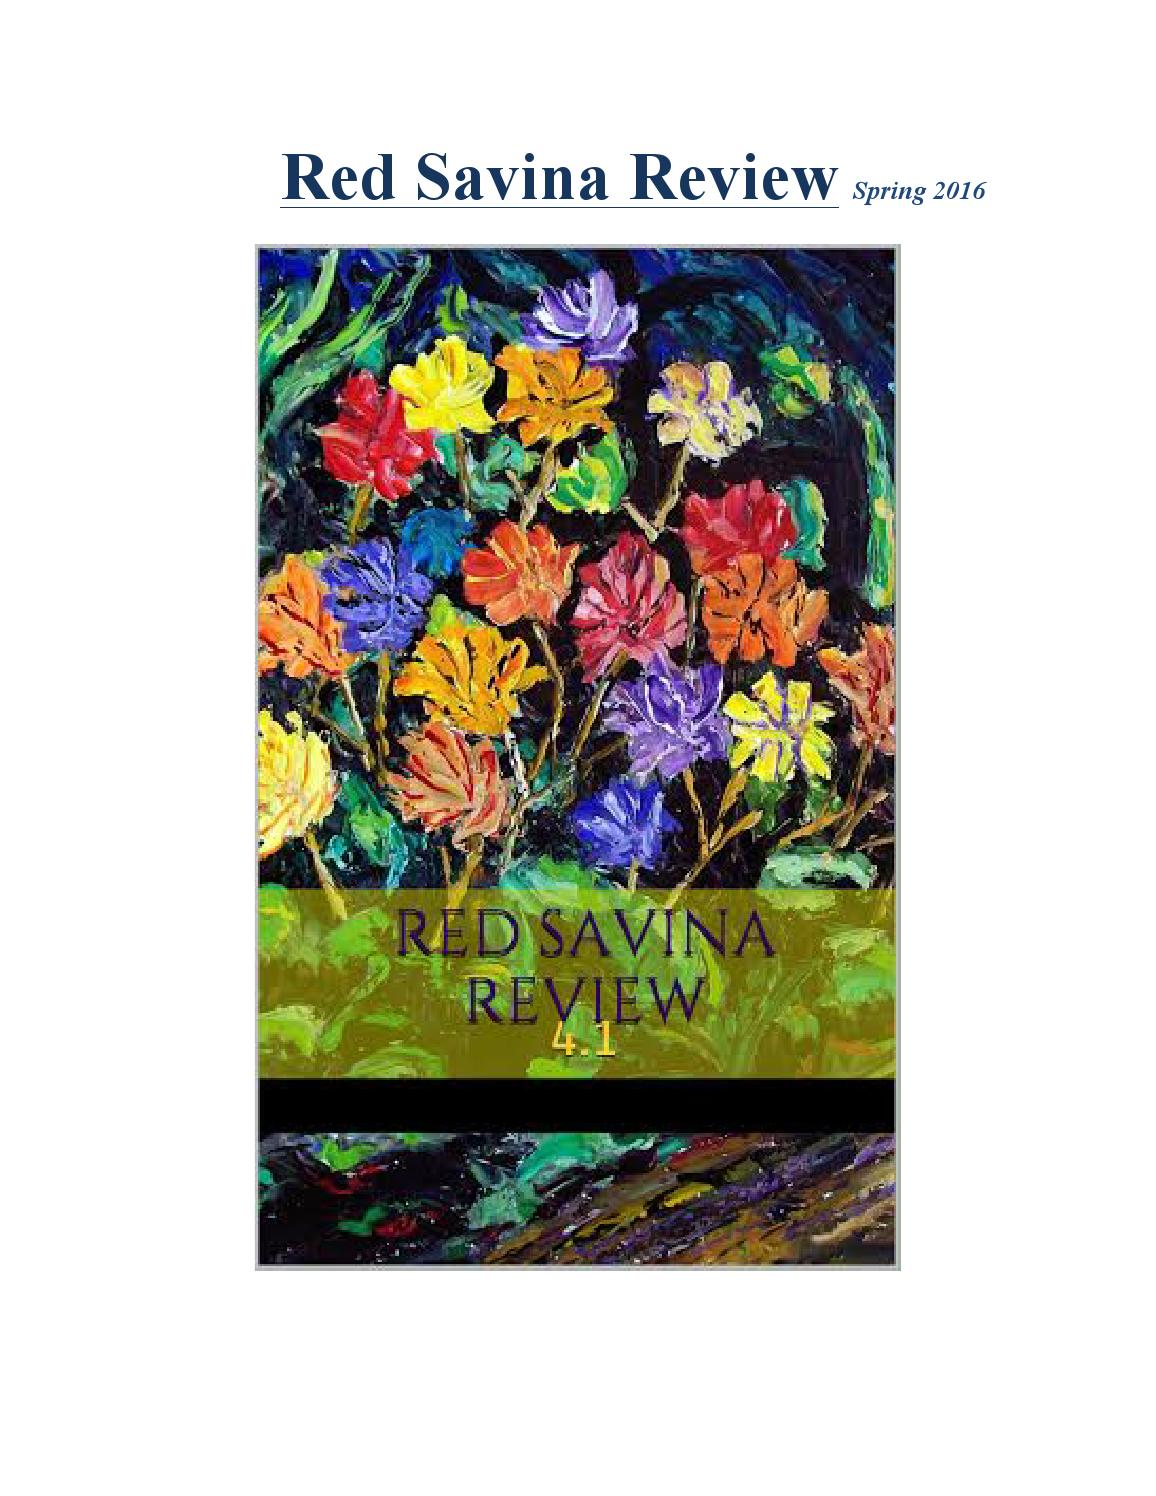 Red Savina Review Issue 4.1 by Red Savina Review - issuu on